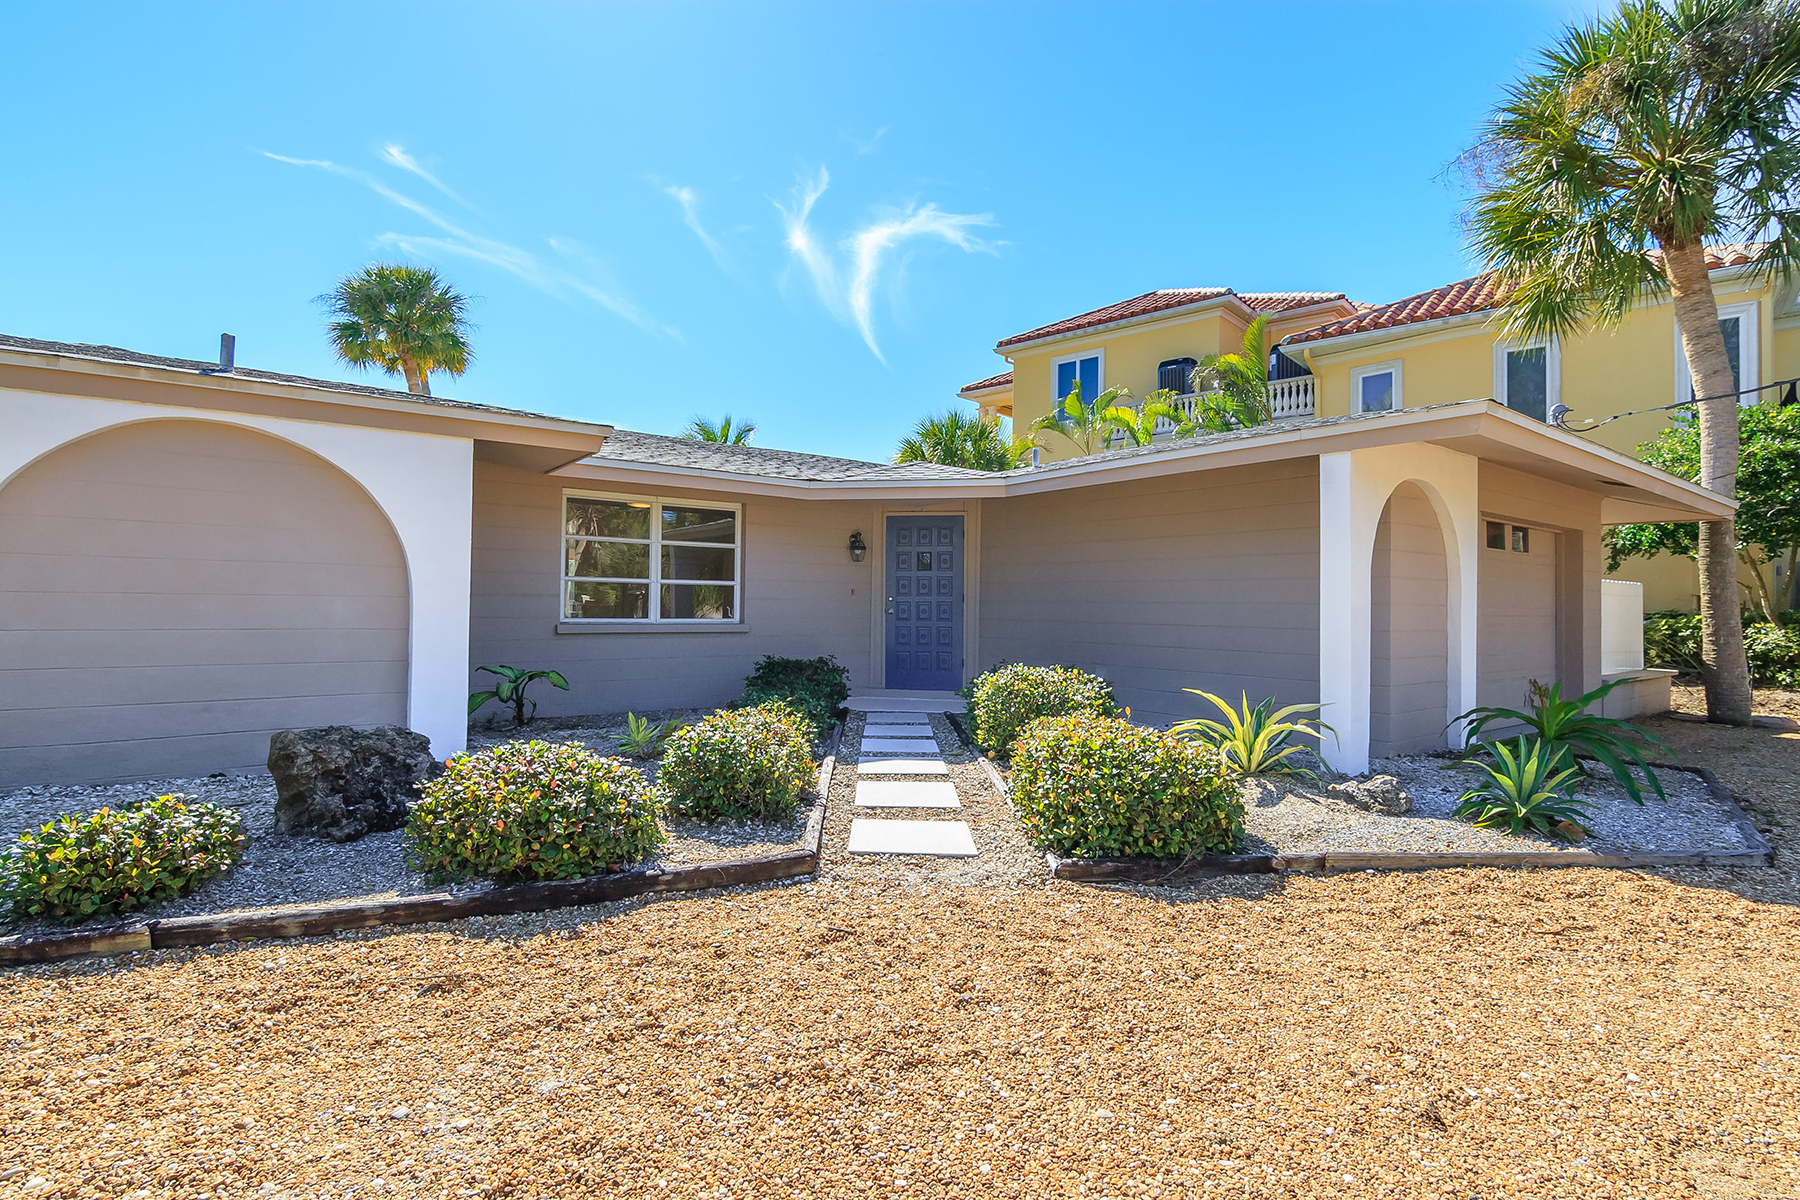 Single Family Home for Sale at CASEY KEY 906 Casey Cove Dr Nokomis, Florida, 34275 United States